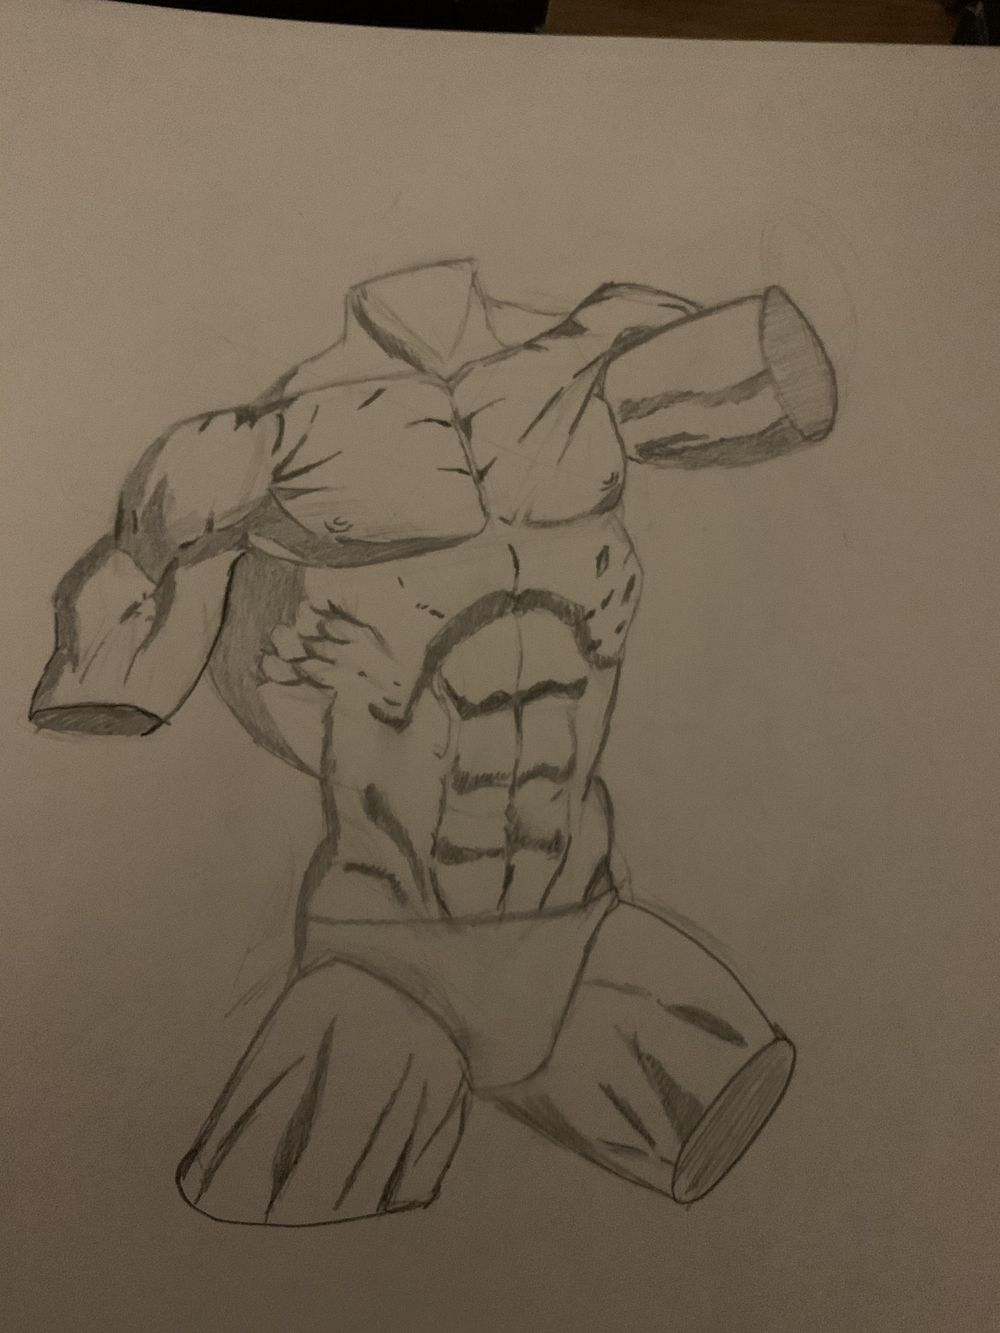 Torso Drawings - image 2 - student project